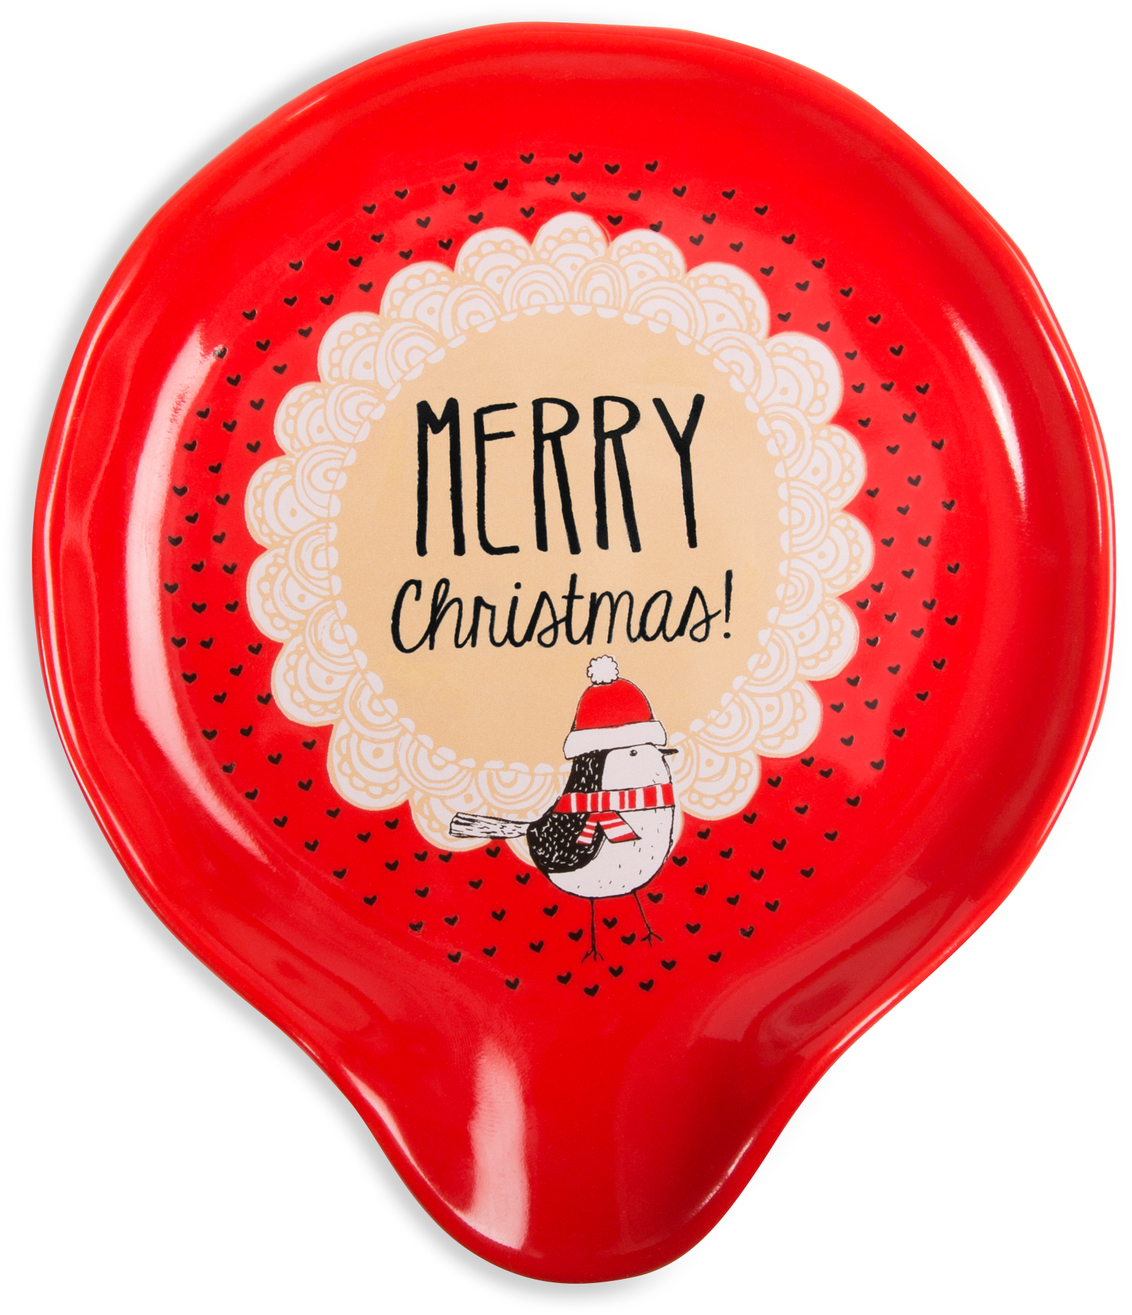 "Merry Christmas! by Snow Pals - Merry Christmas! - 5"" Spoon Rest"